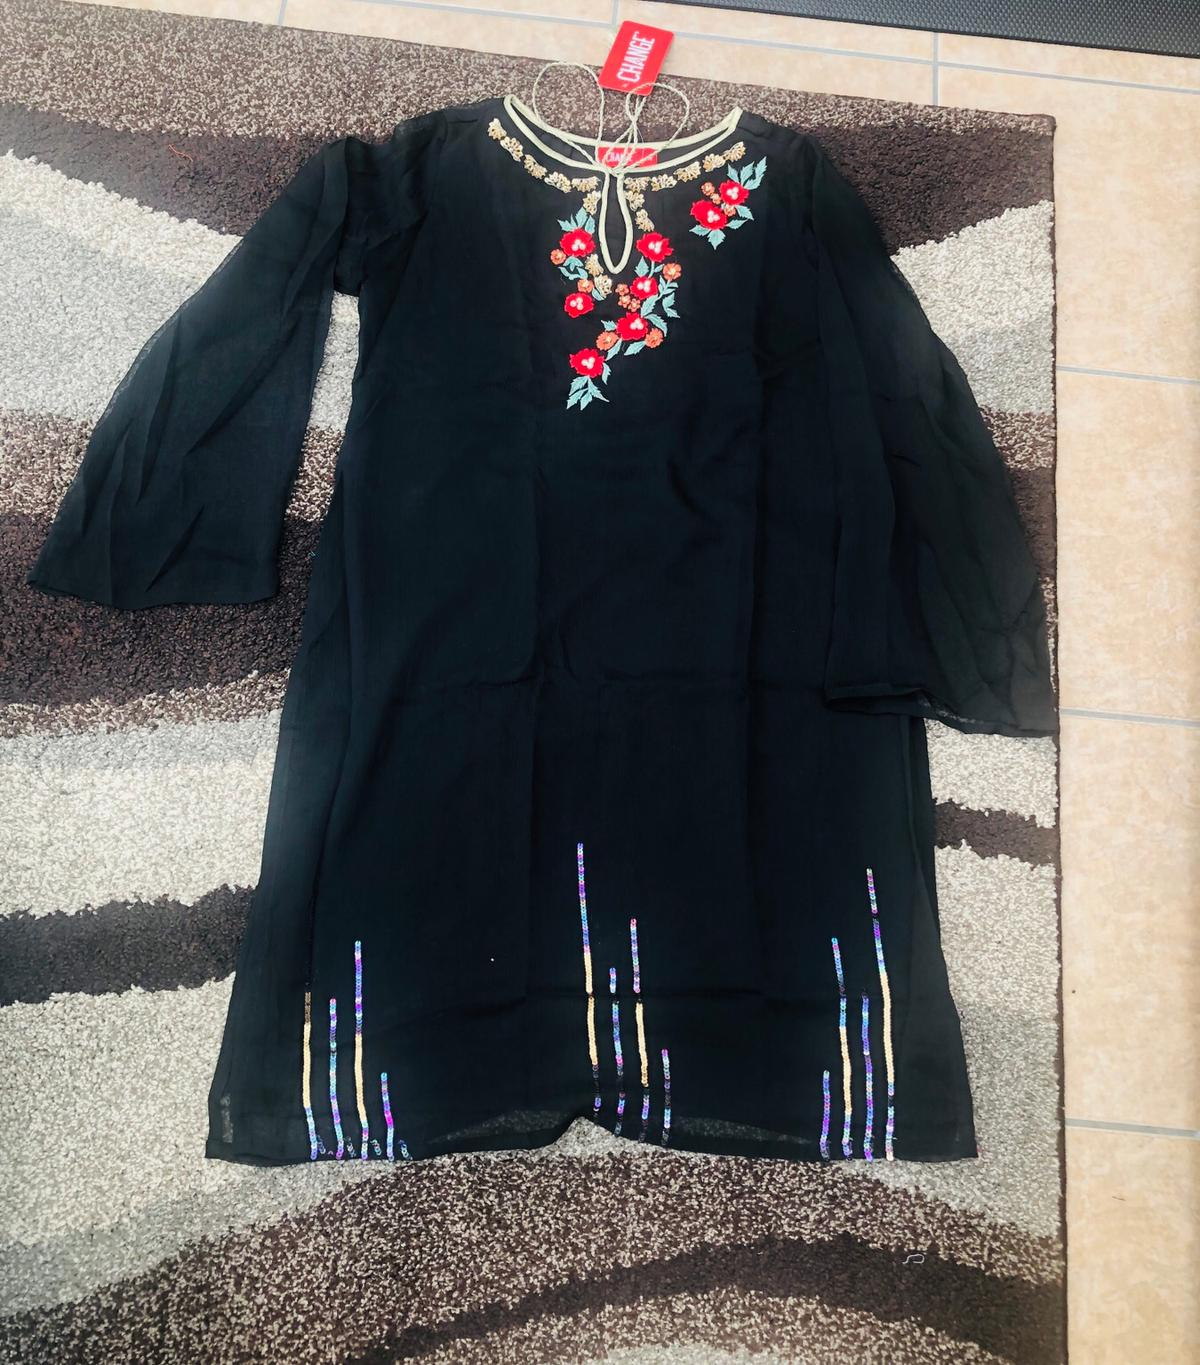 Latest Collection For more Detail please visit my Facebook page Iffy.Z.Collection Fixed price No silly offer please